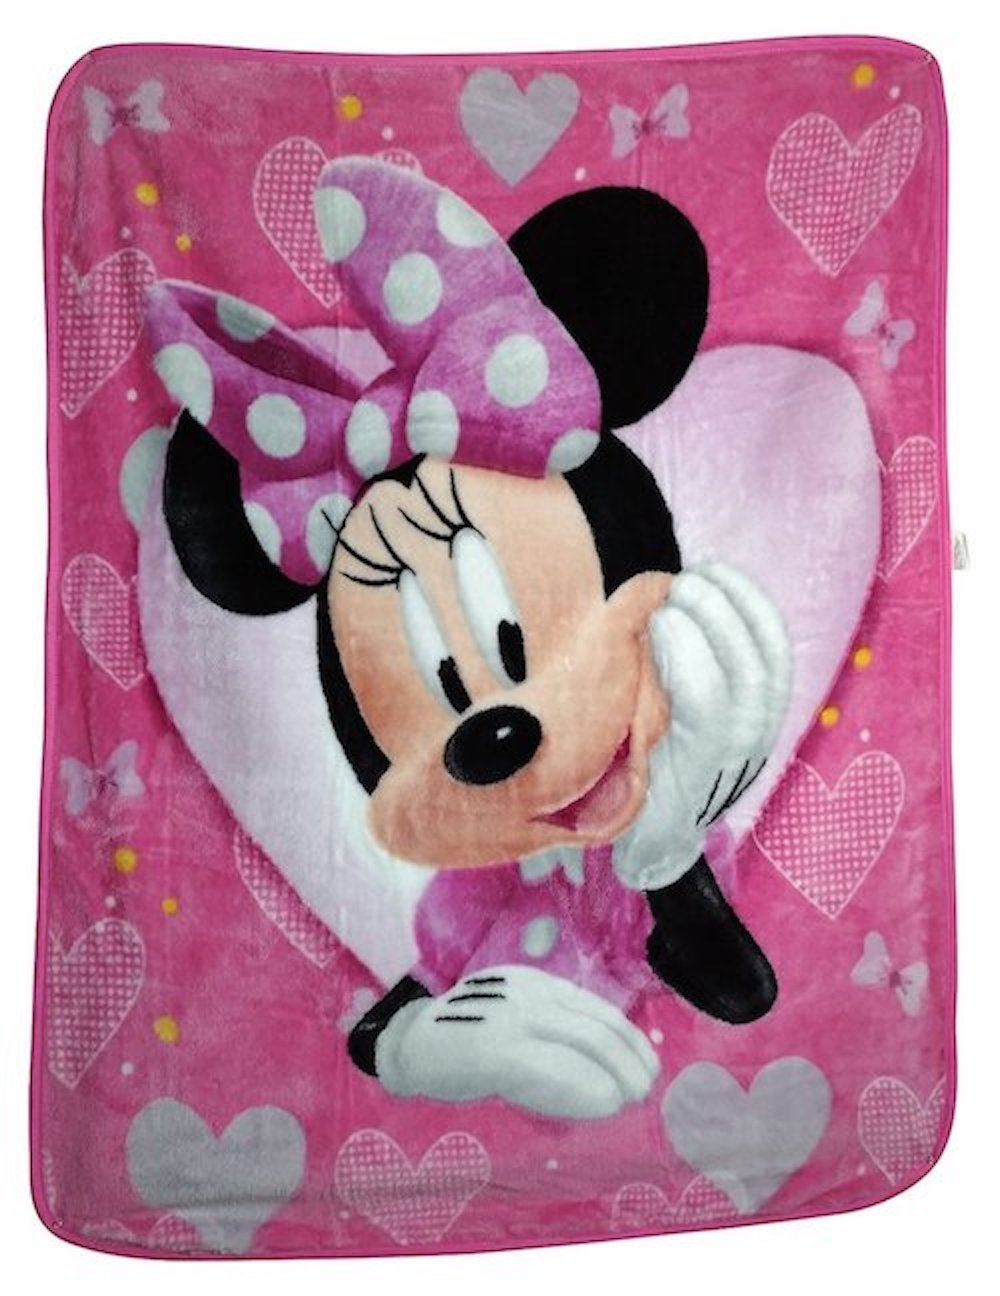 Disney Minnie Mouse Hearts and Bows Plush Style Blanket, Measures 40 by 50 inches